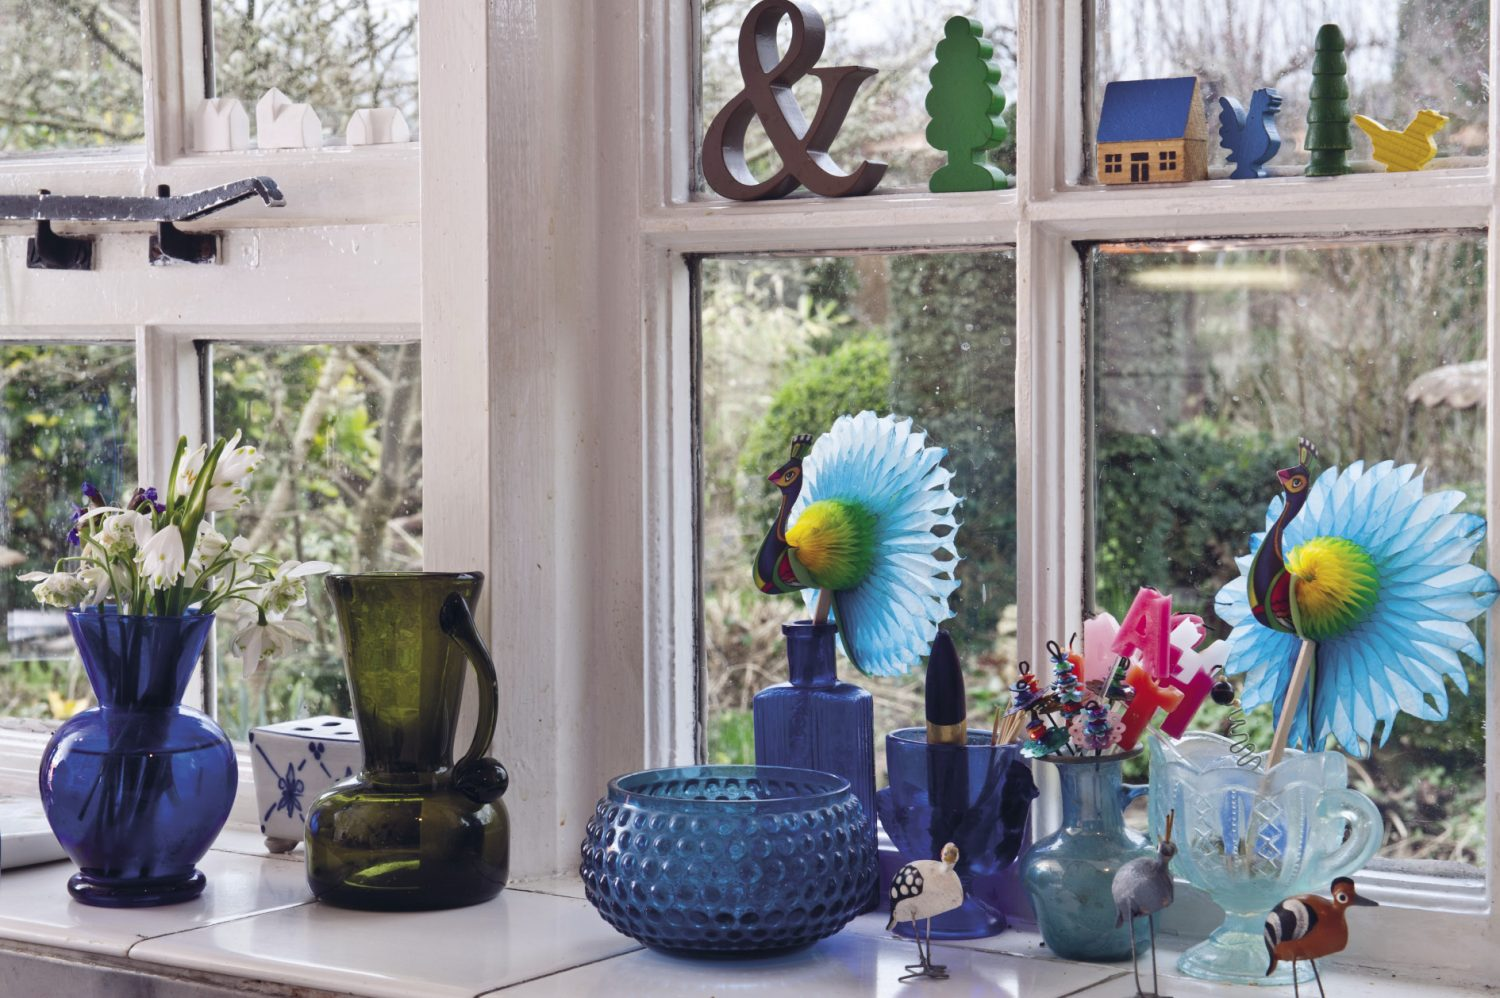 A windowsill full of interesting and beautiful finds